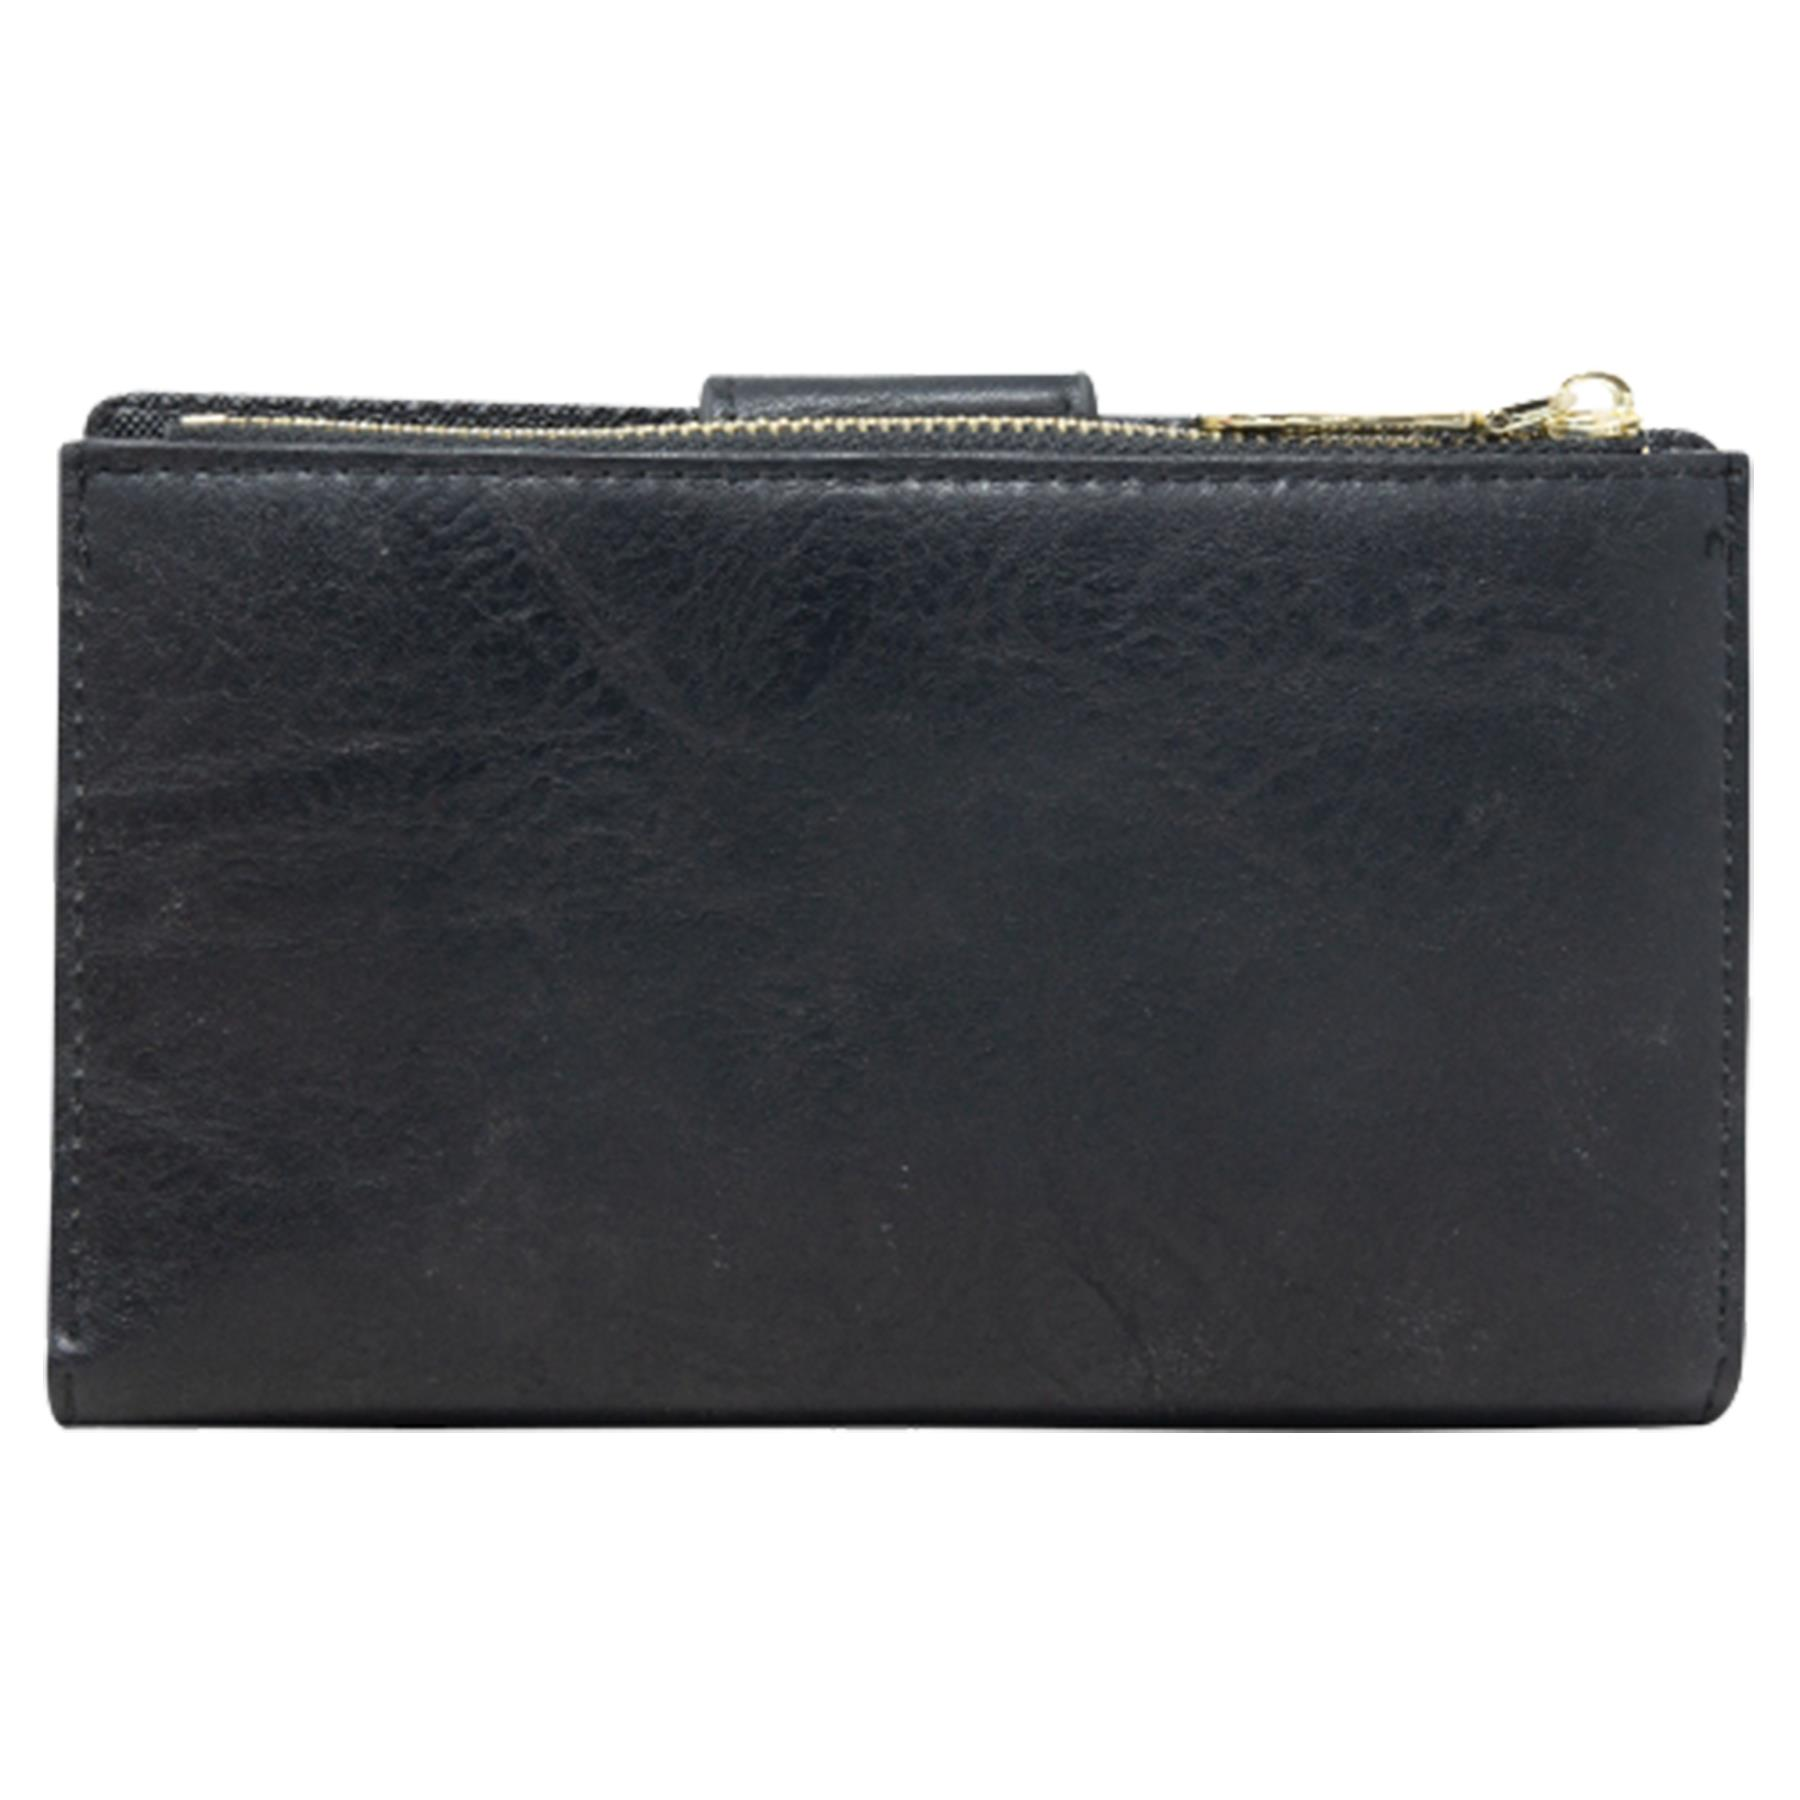 New-Soft-Plain-Synthetic-Leather-Card-Organiser-Ladies-Long-Purse thumbnail 4